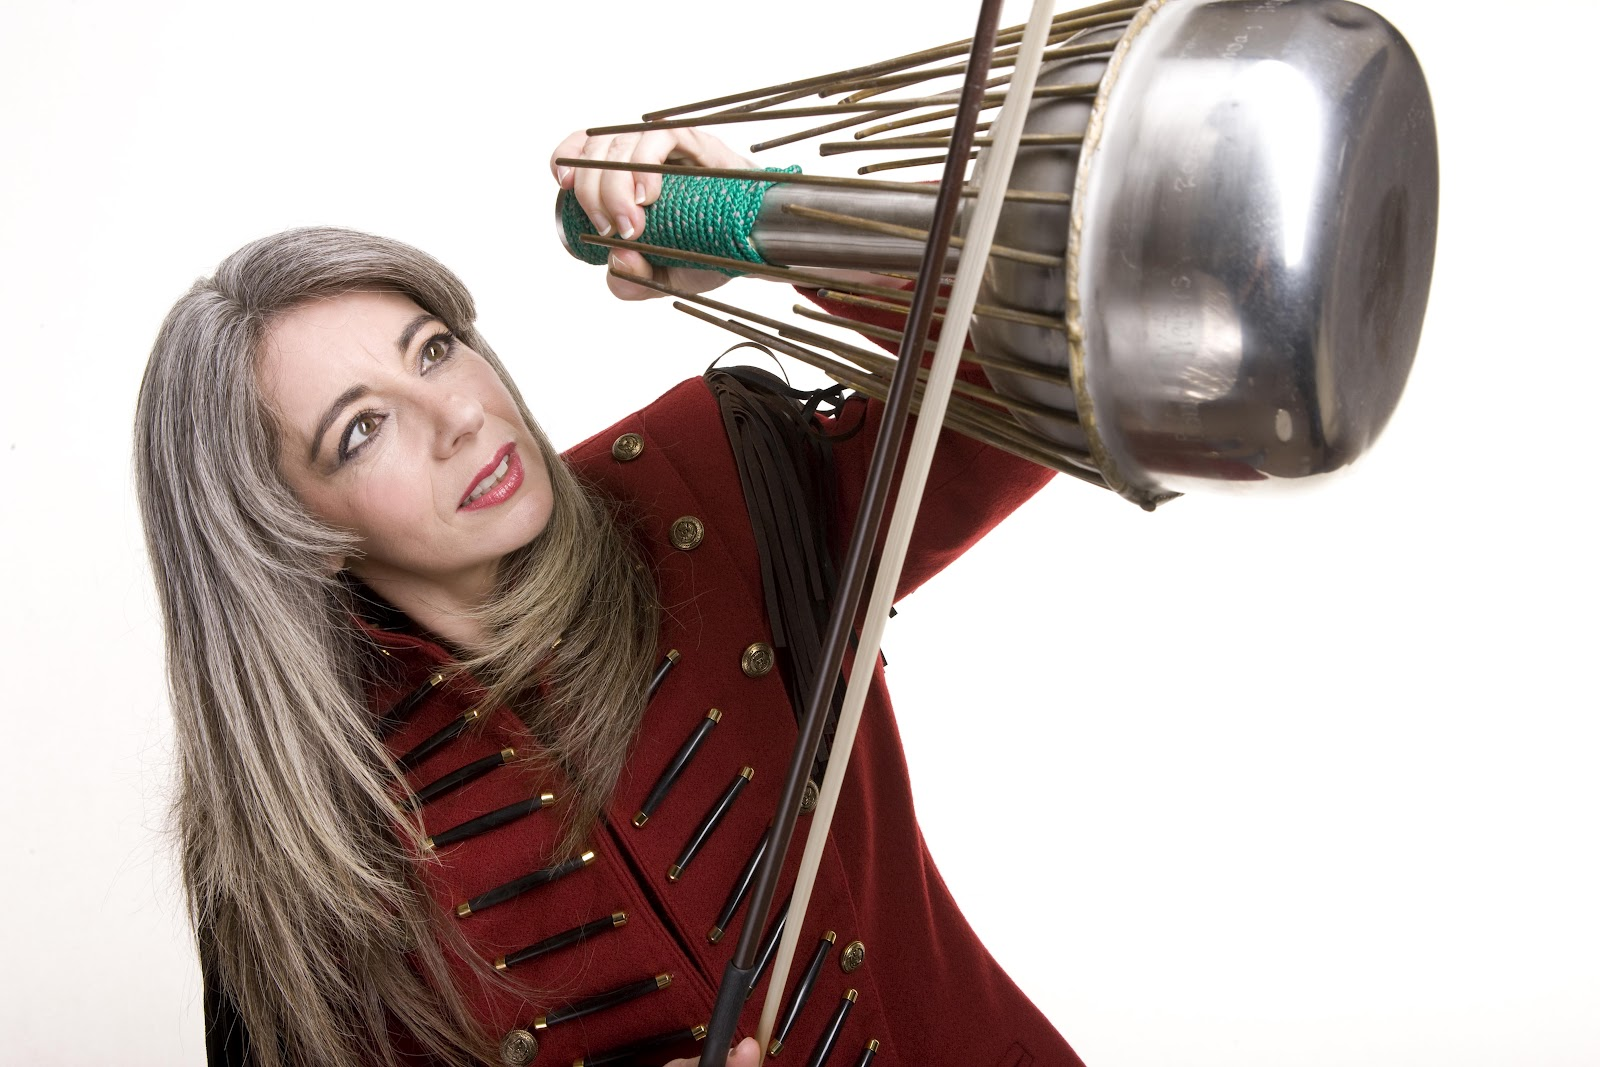 evelyn glennie Find the song lyrics for evelyn glennie - top tracks discover top playlists and videos from your favorite artists on shazam.